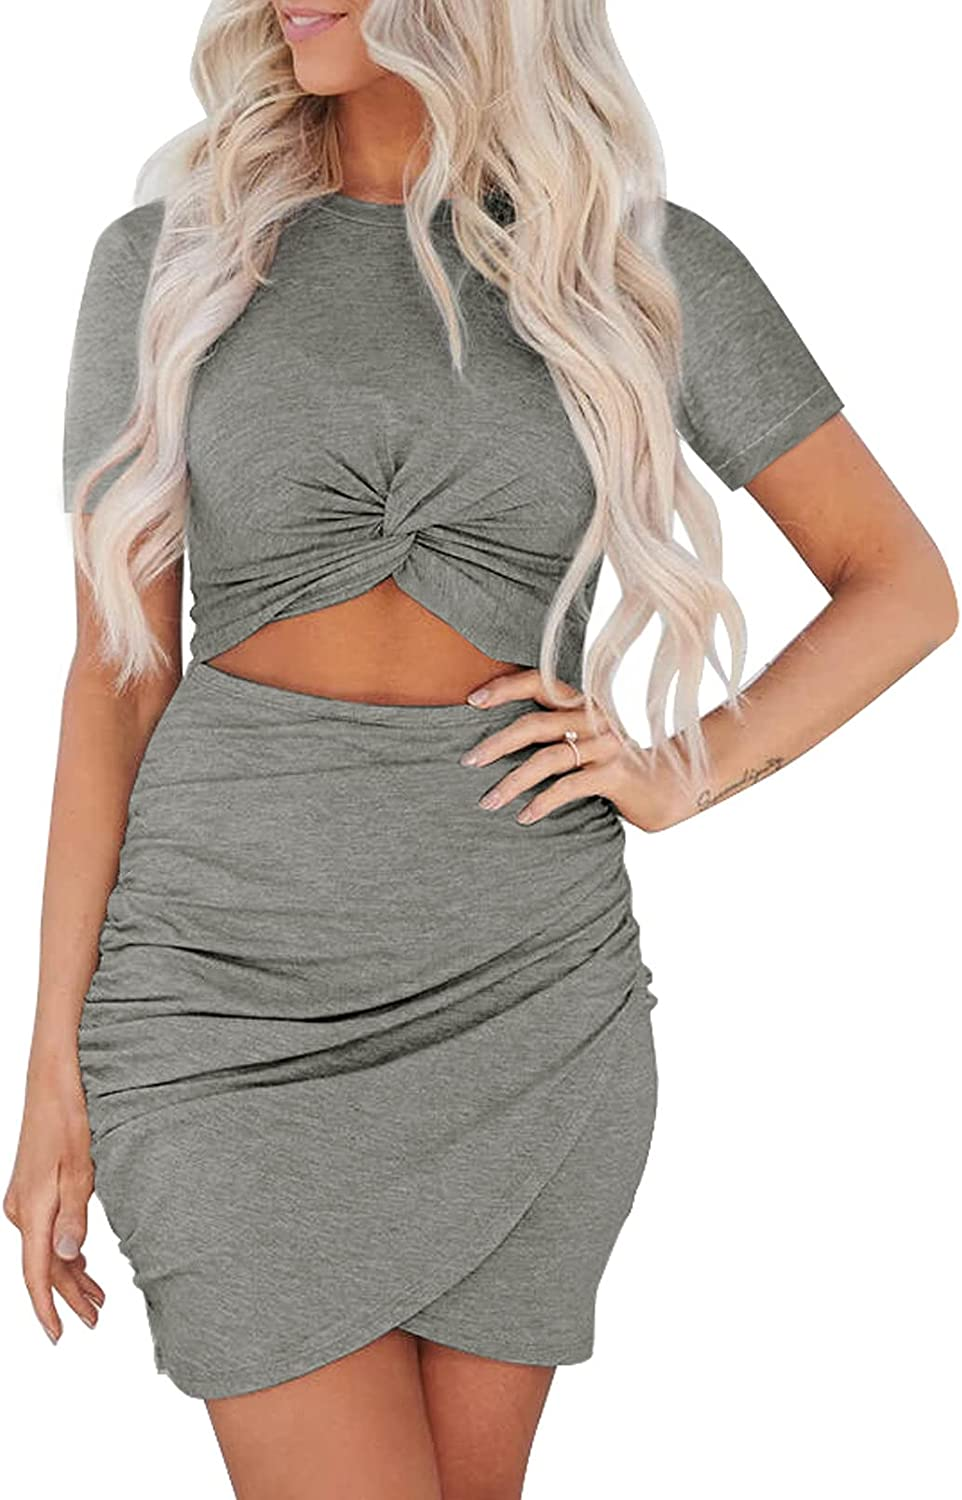 Ecrocoo Women's Dress Solid Color Crewneck Bodycon Tie Knot Hollow Out Ruched Wrapped Hip Short Dress